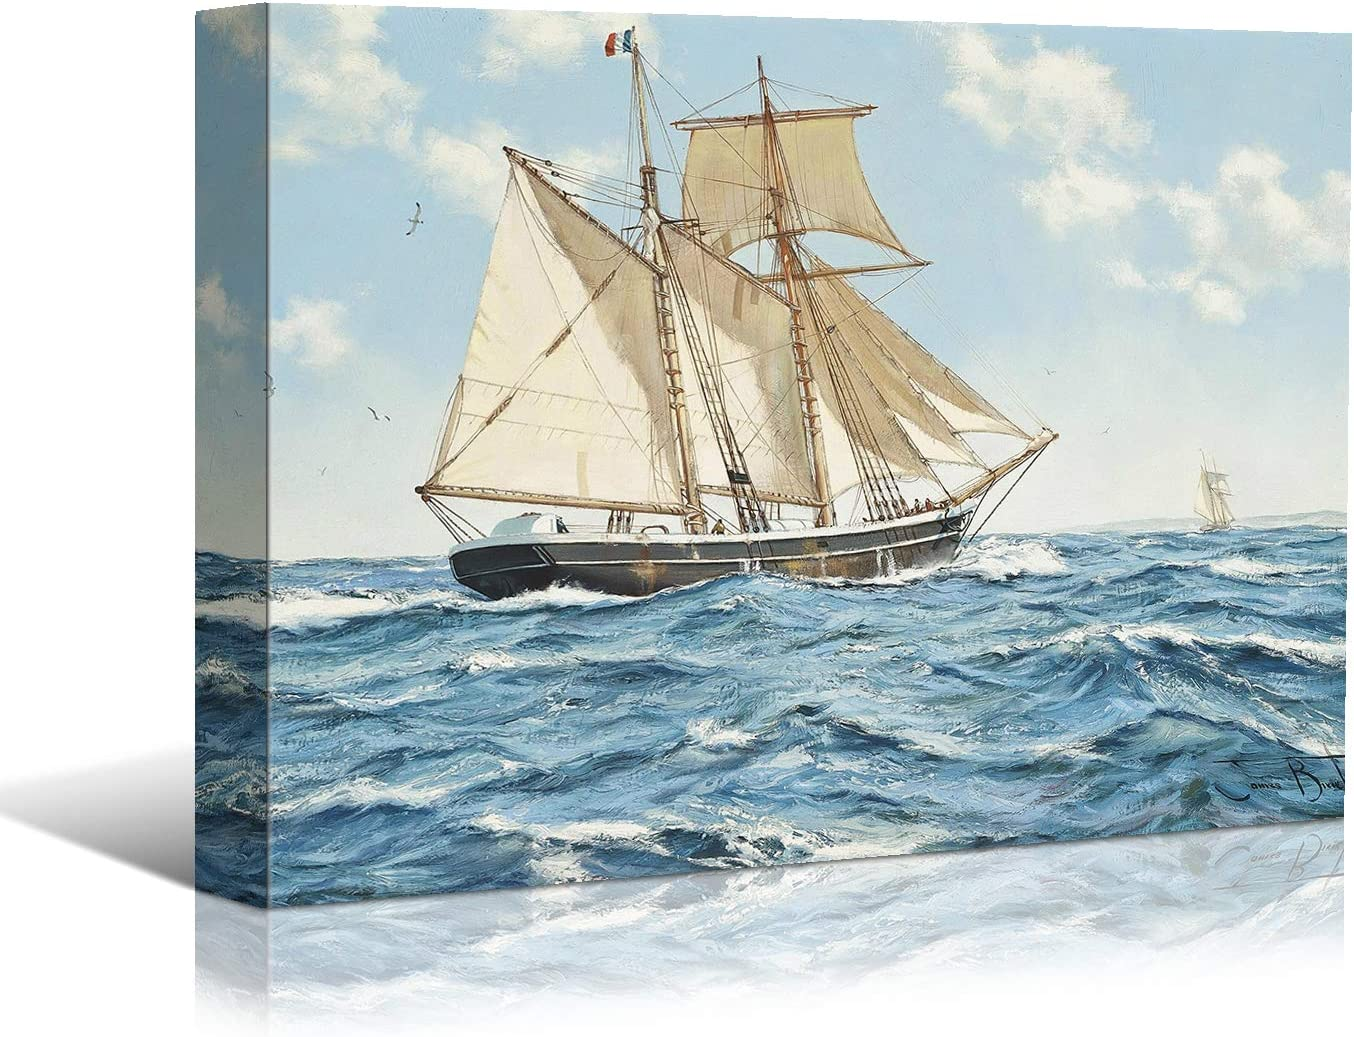 Looife Ocean Theme Canvas Wall Art, 36x24 Inch Sailboats on Stormy Sea Picture Prints Wall Decor, Sailing Ship Painting Deco for Living Room, Bedroom, Bathroom and Hotel, Ready to Hang